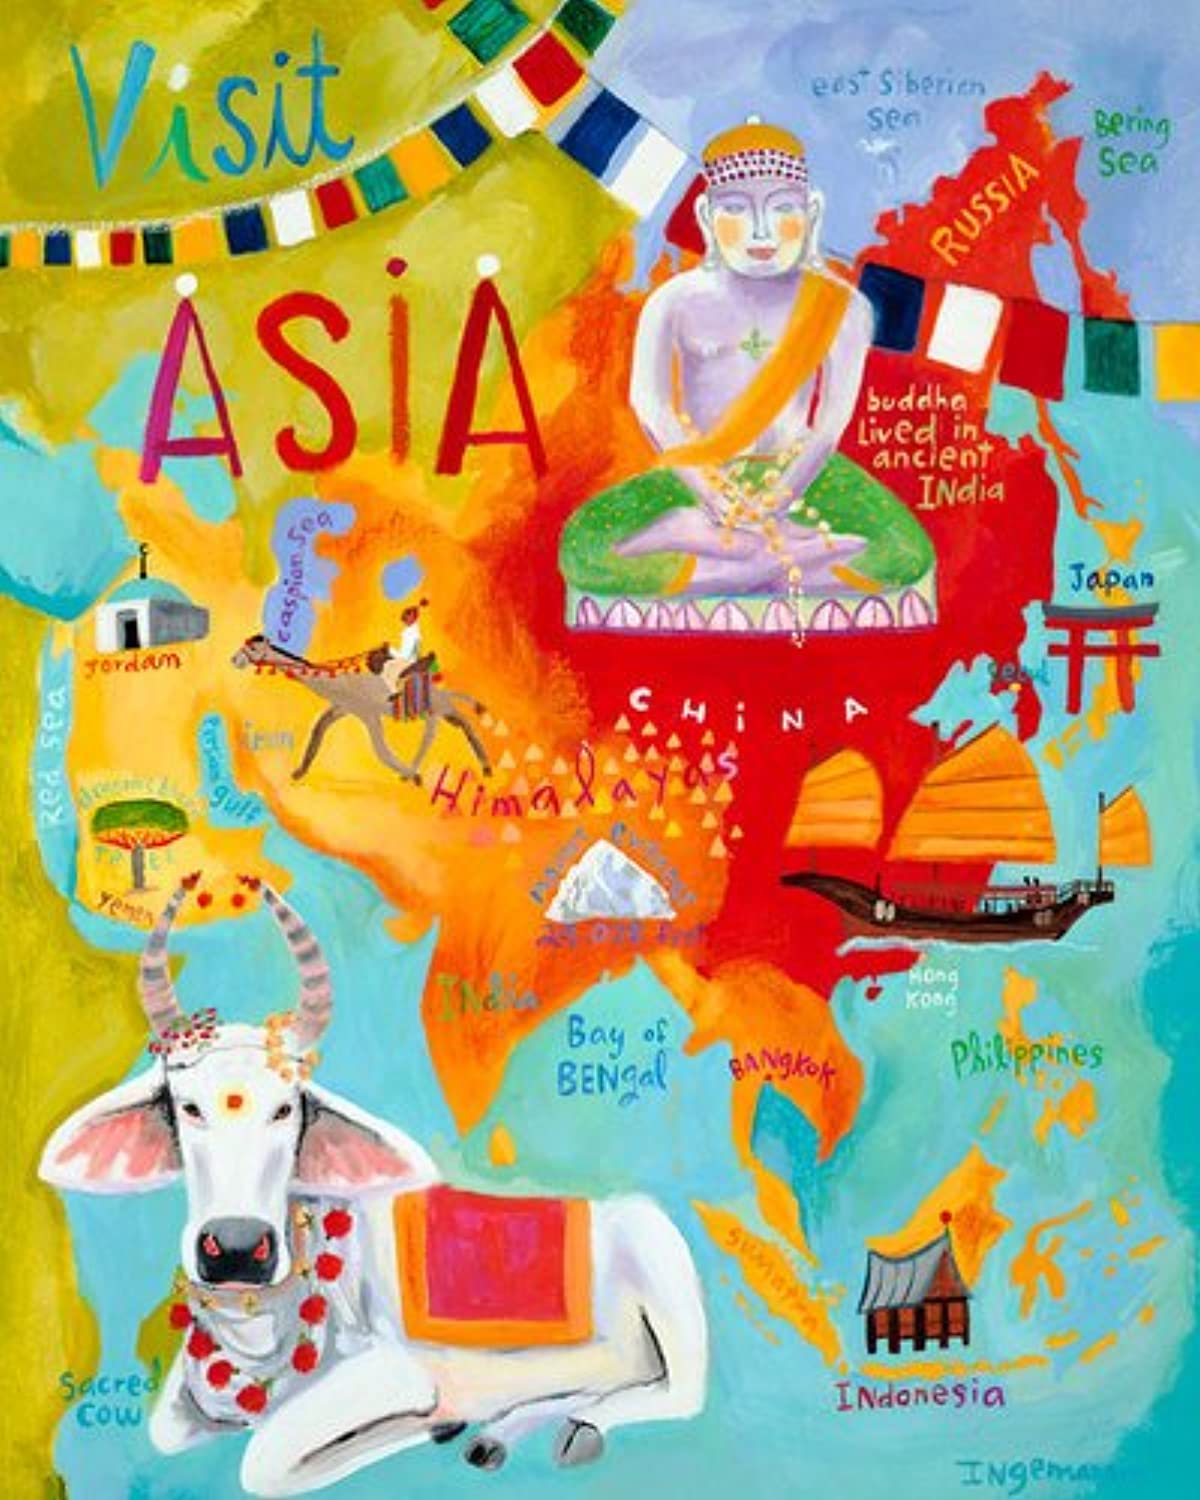 Oopsy Daisy Visit Asia Stretched Canvas Wall Art by women Ingemanson, 24 by 30Inch